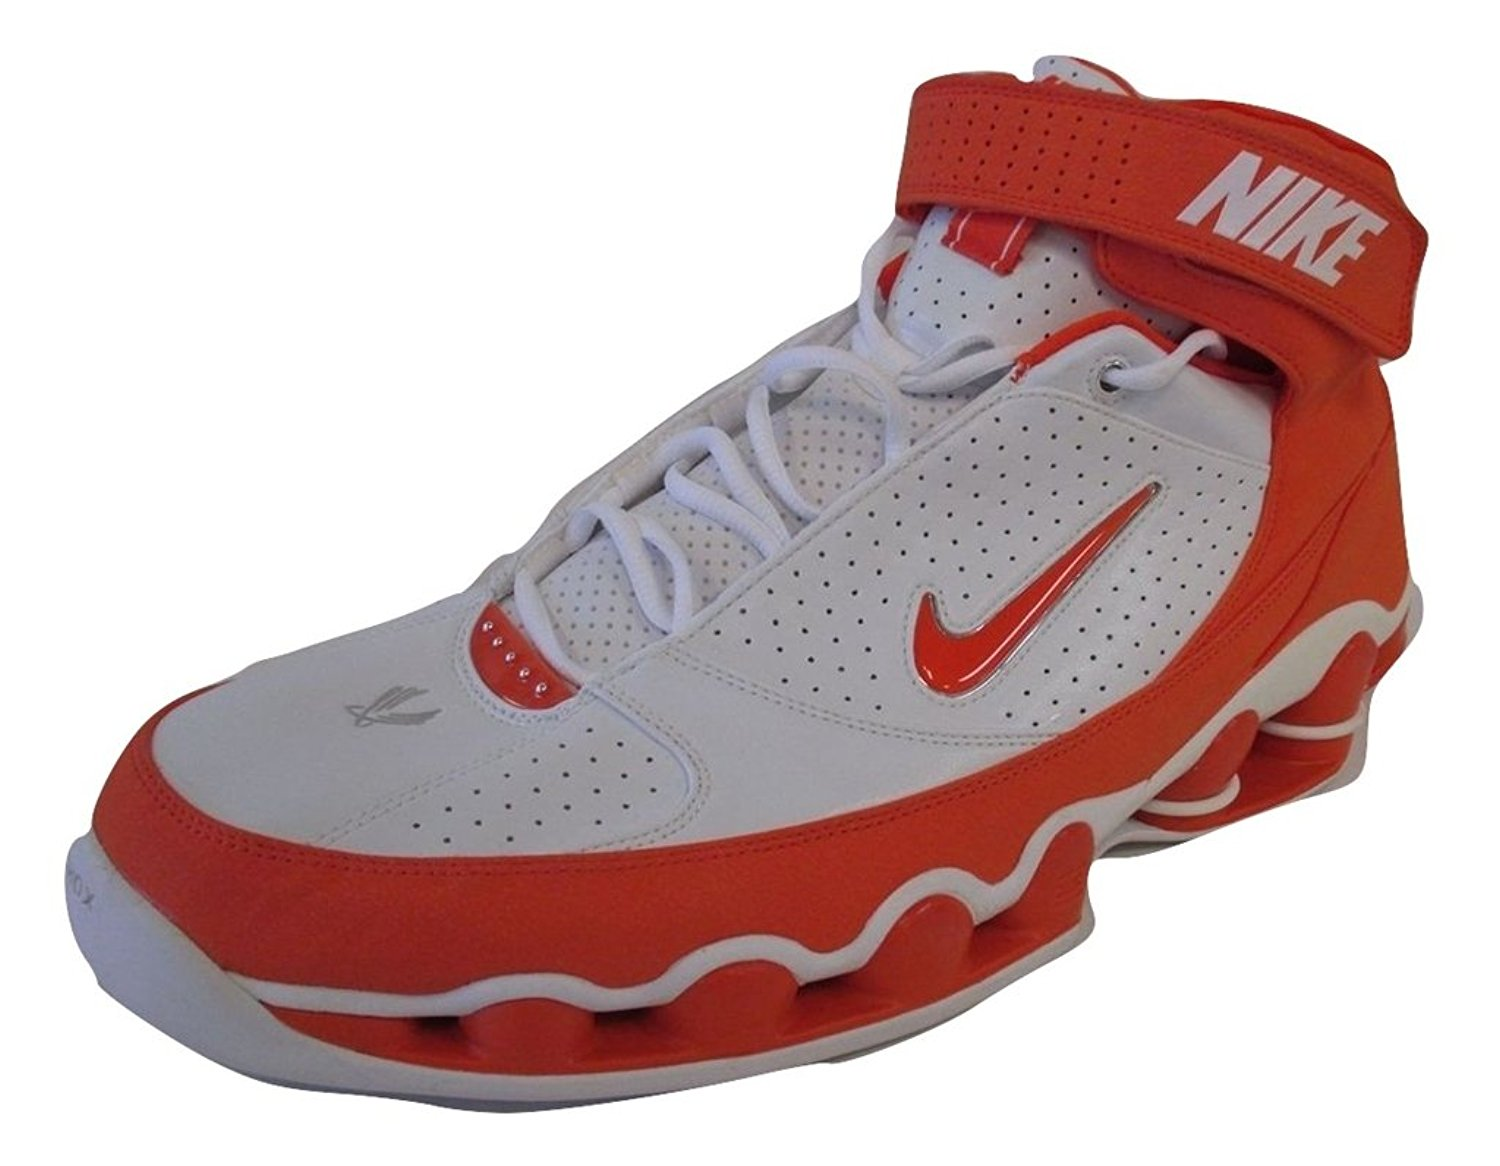 aacf855f98 Get Quotations · Nike Men's Shox Ups TB Basketball Shoes White/Safety  Orange 17 ...